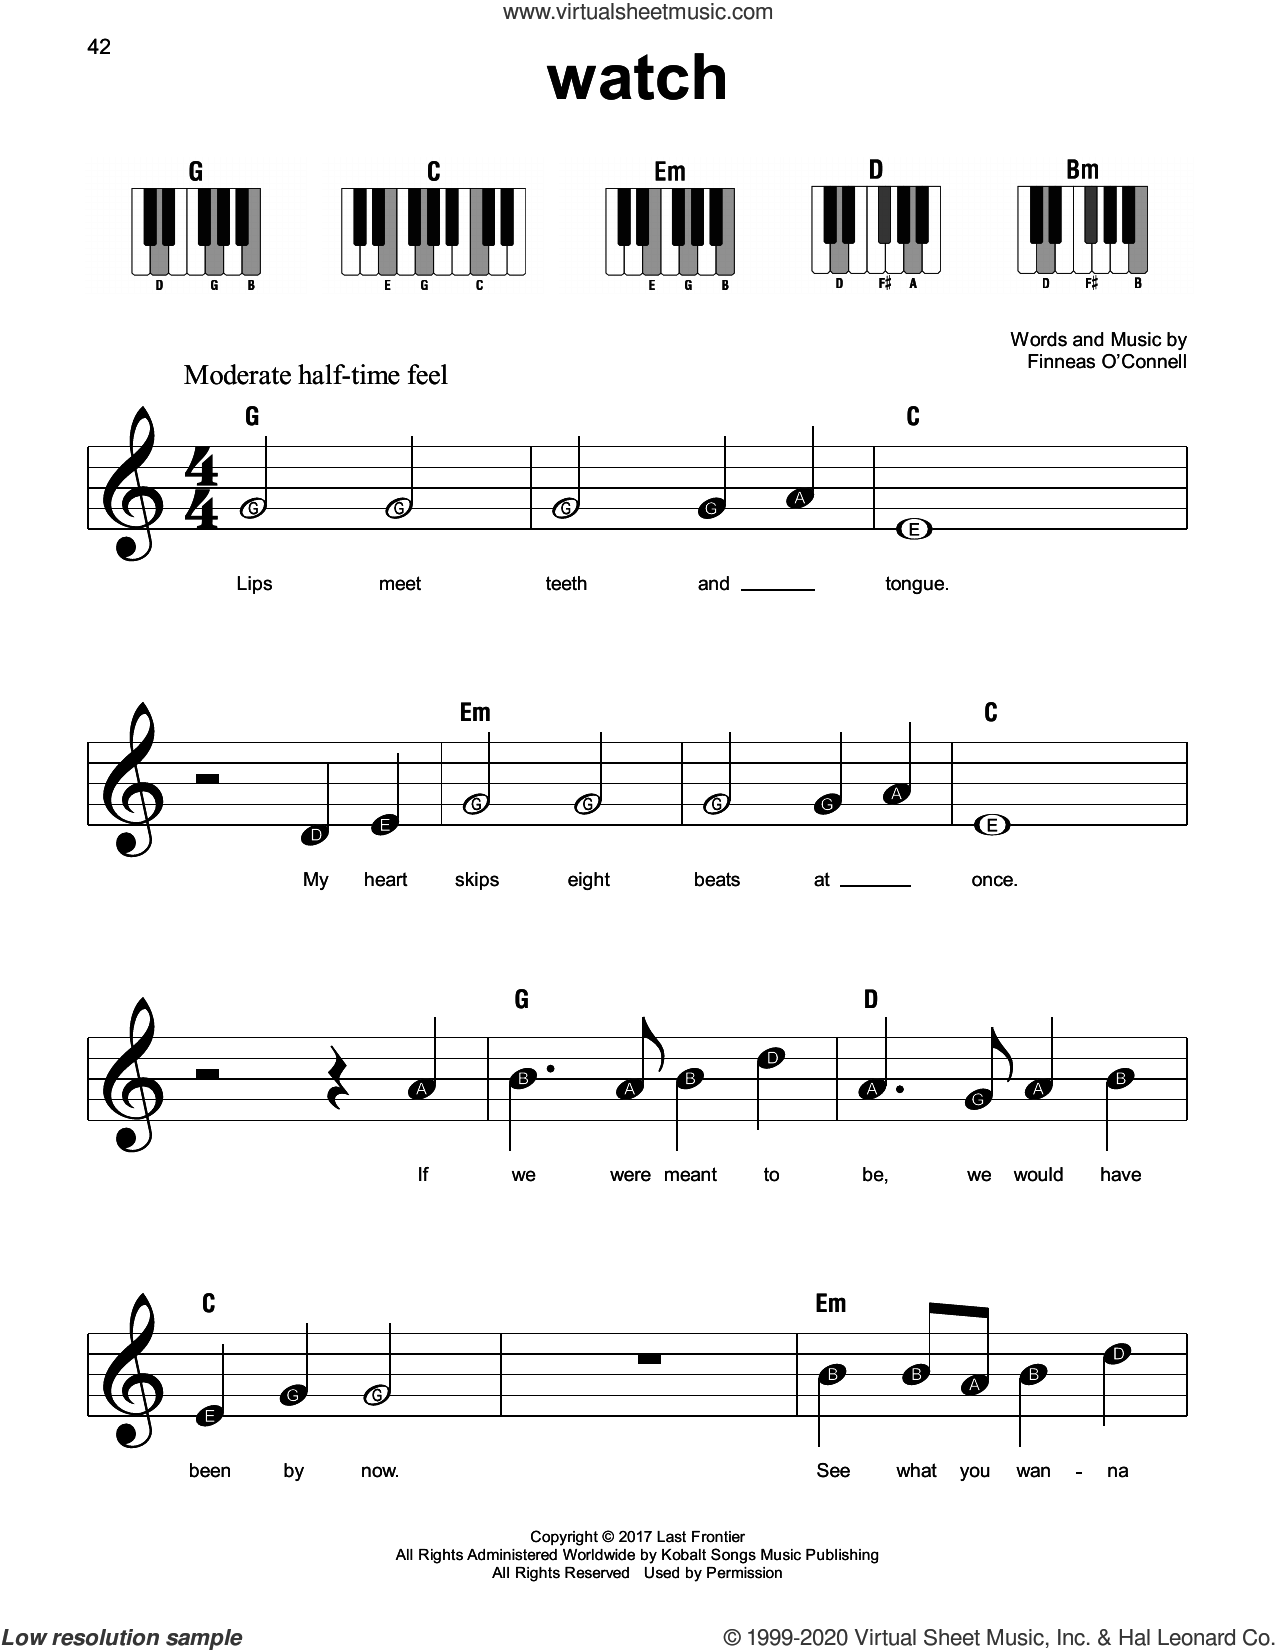 watch sheet music for piano solo by Billie Eilish, beginner skill level